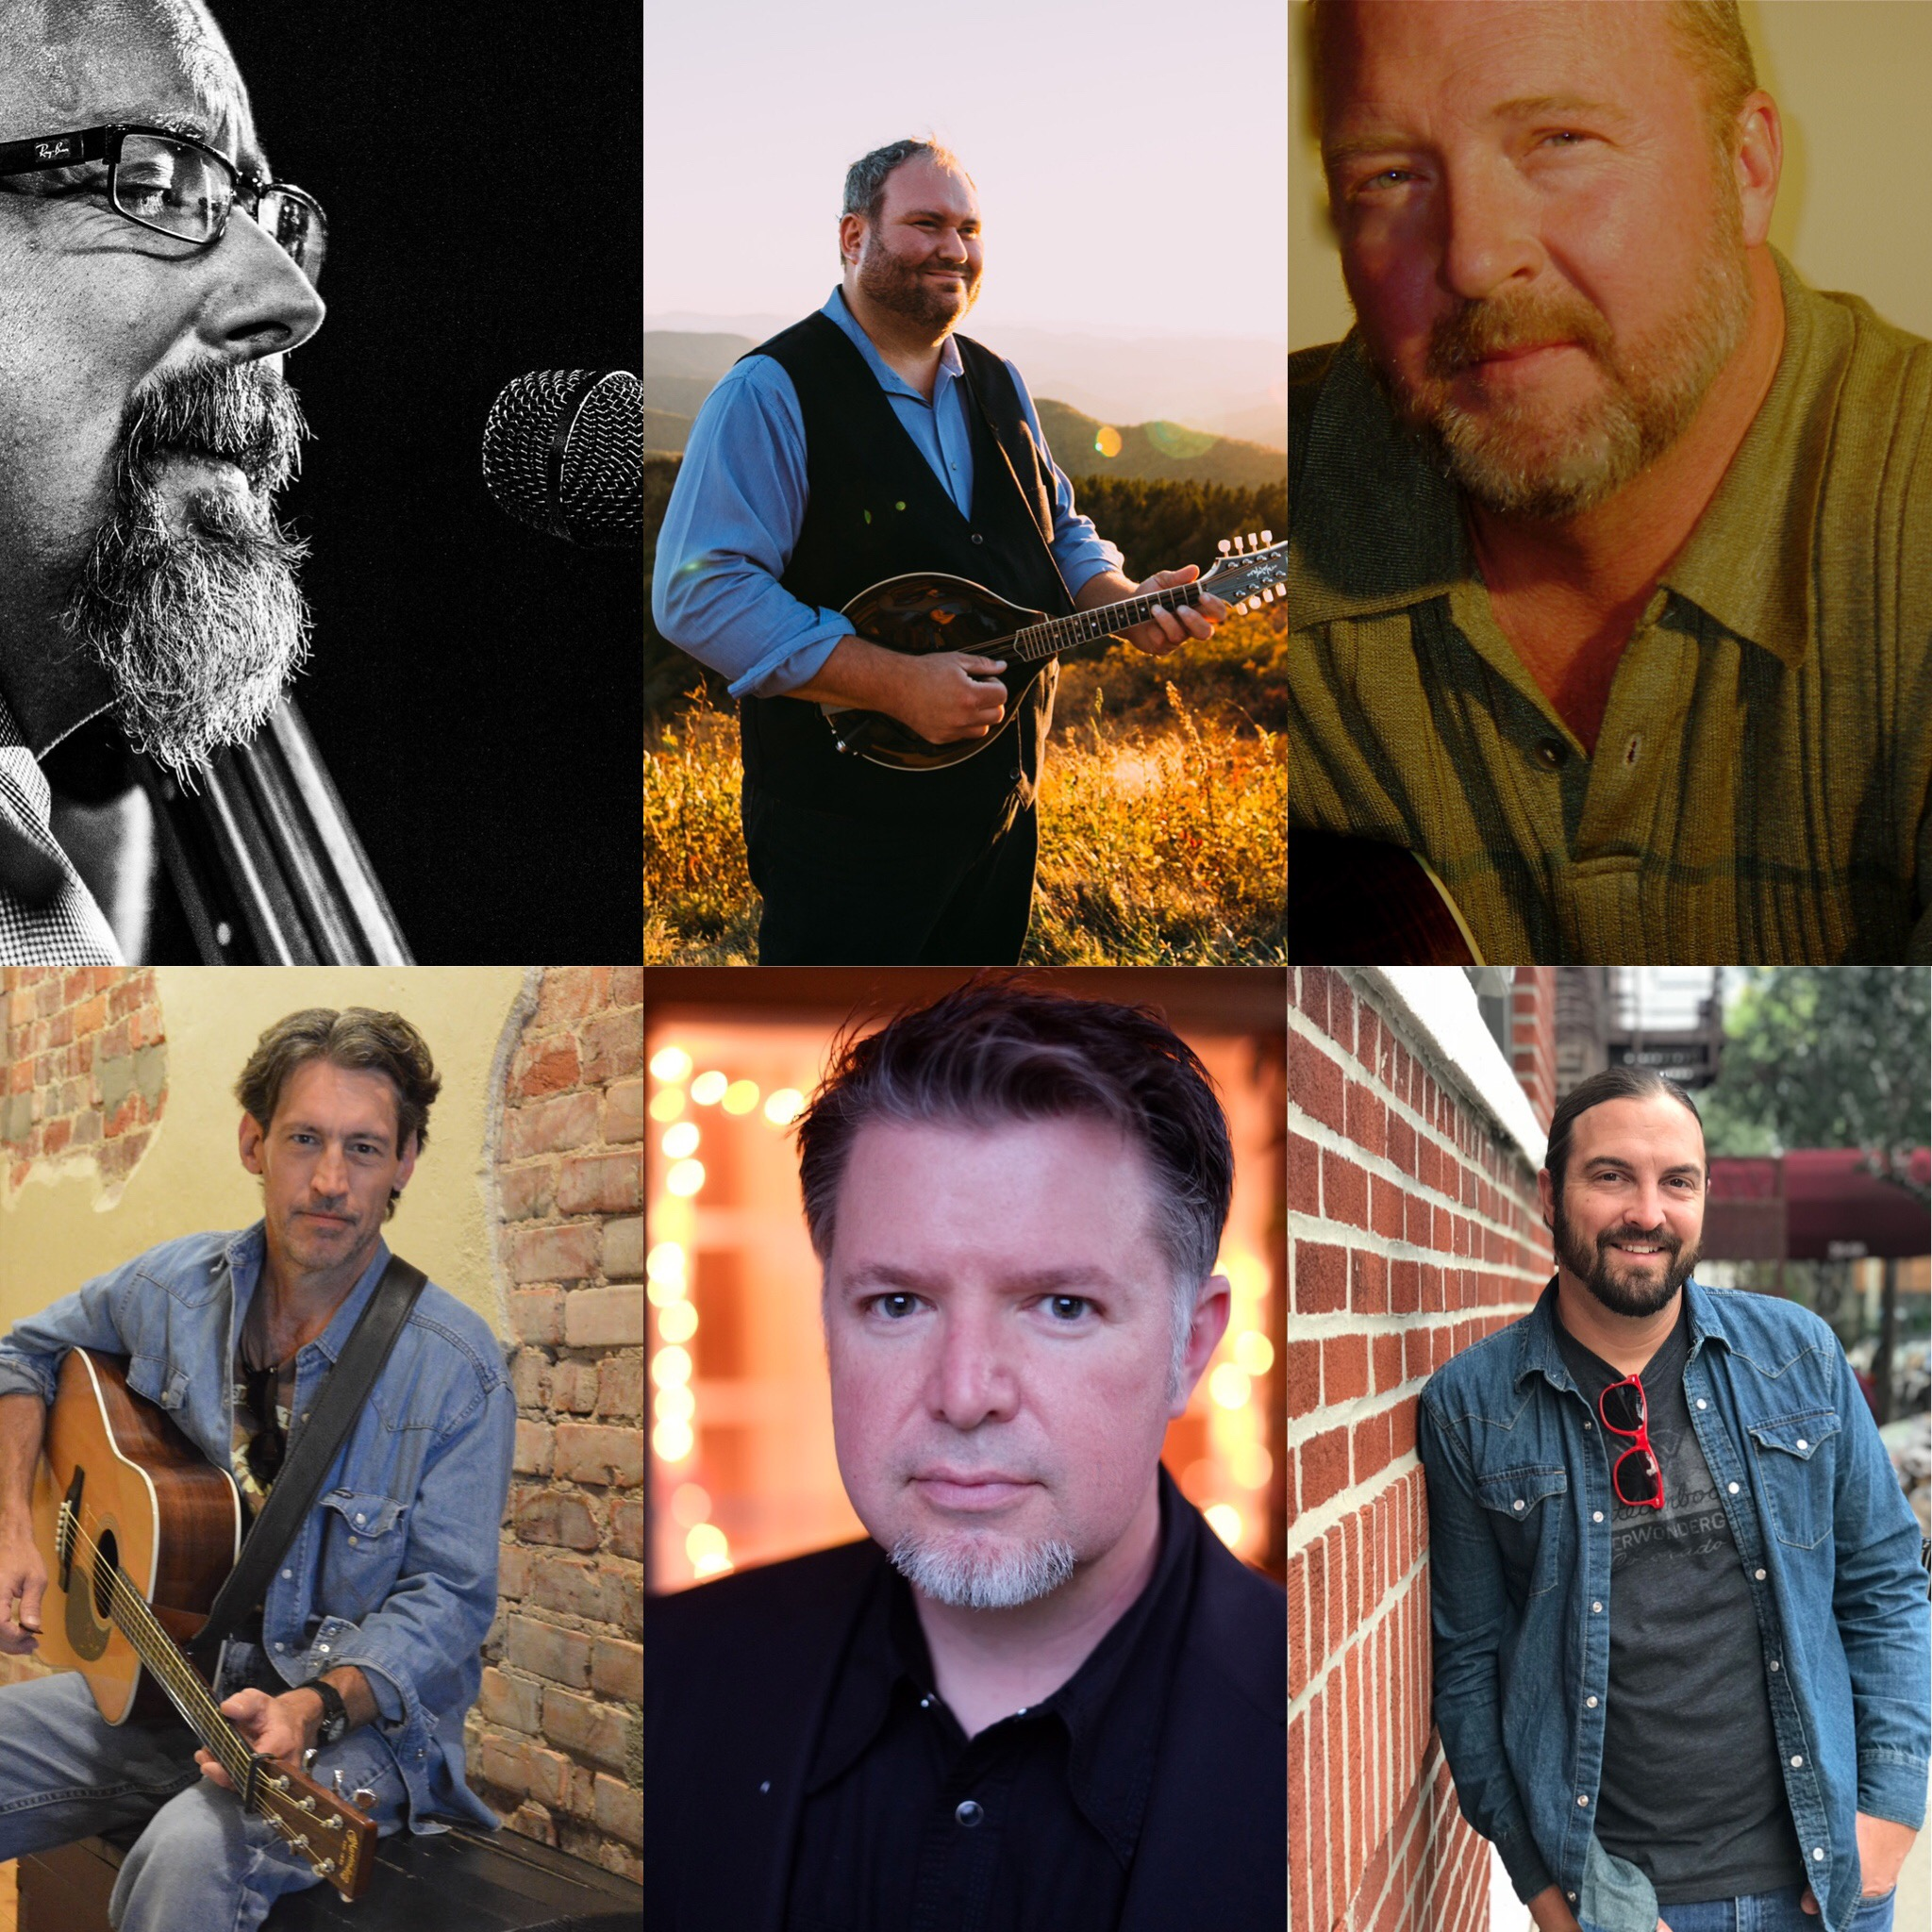 Haywood County songwriters kick off 'Art of Music' festival in Waynesville